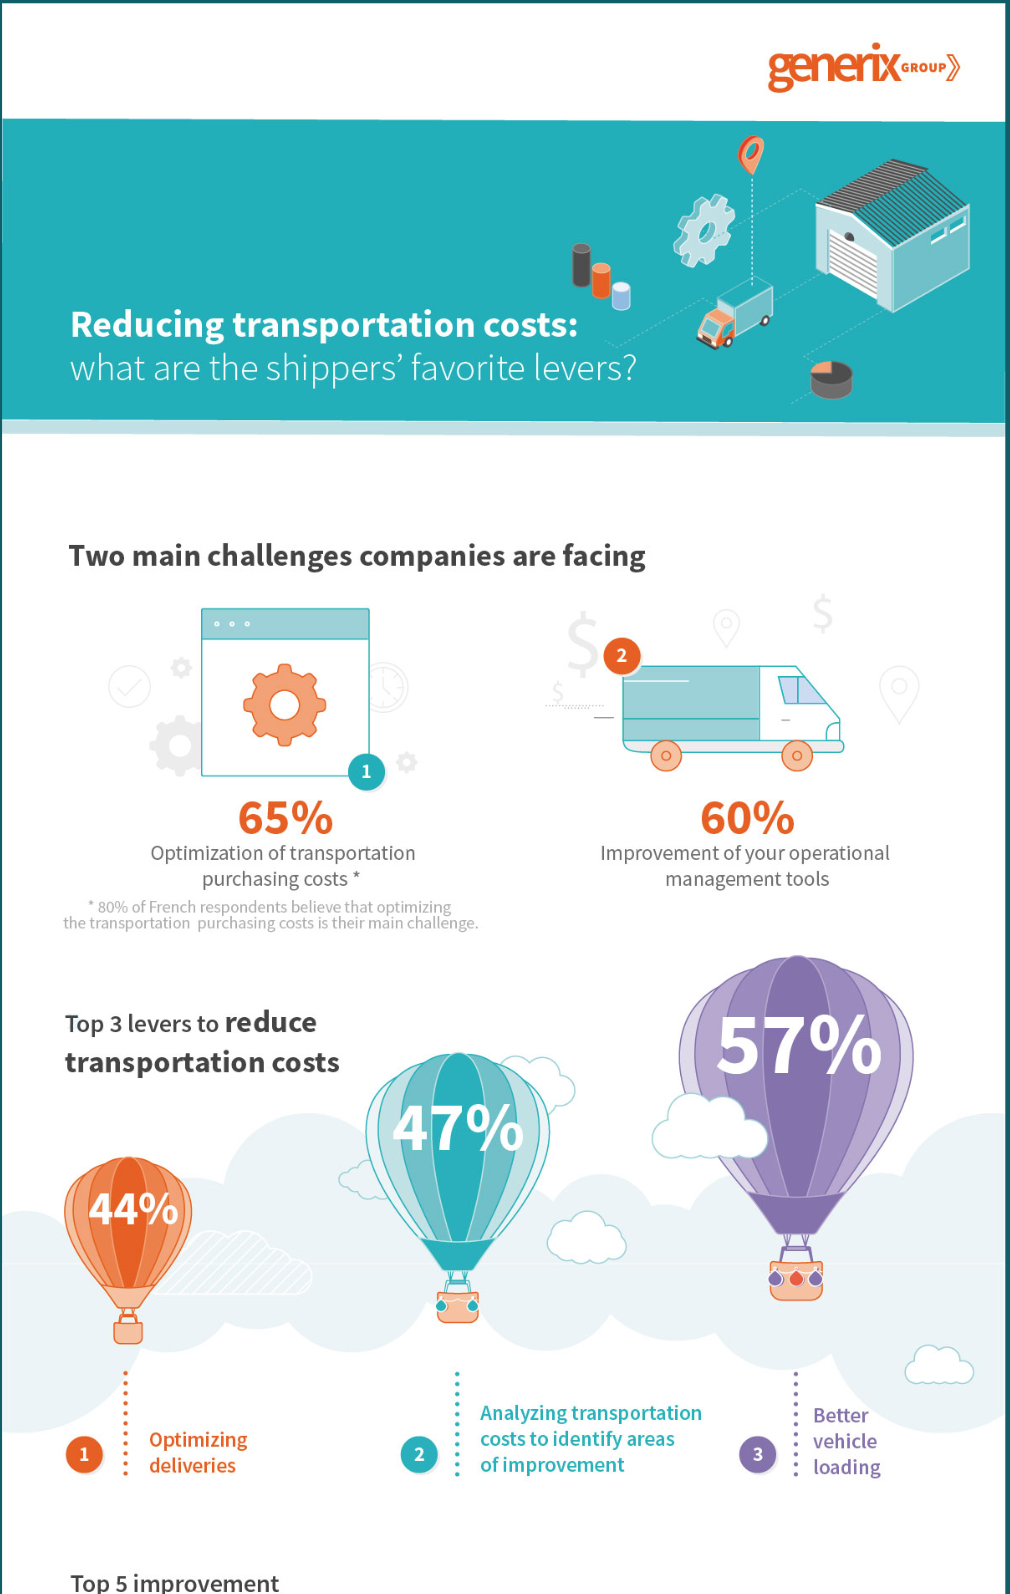 image-reduce-transport-costs